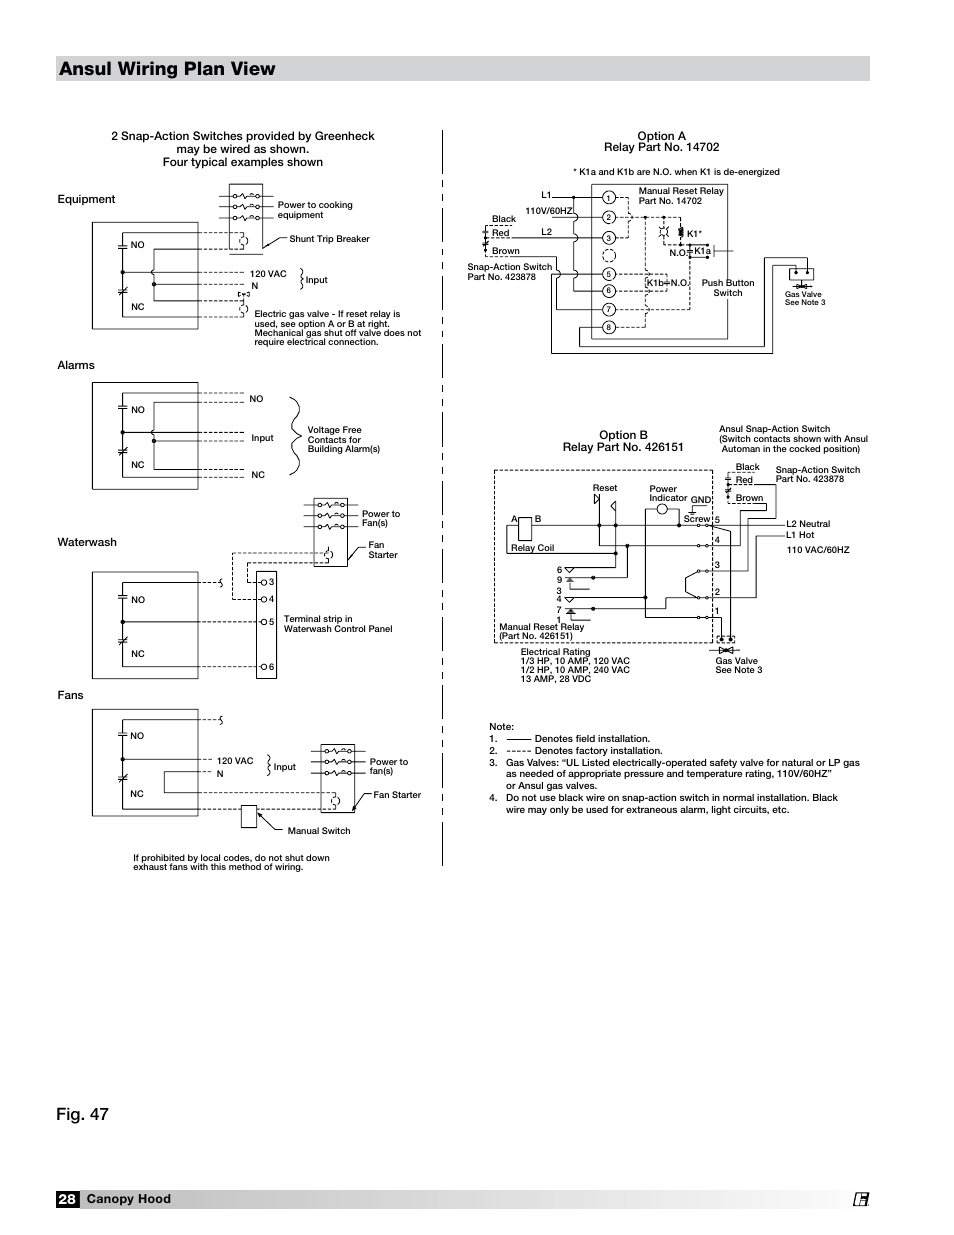 greenheck fan 452413 page28?resize\\\\\\\\\\\\\\\\=954%2C1235 dexen 6003 gas valve wiring diagram conventional fire alarm dexen 6003 wiring diagram at creativeand.co